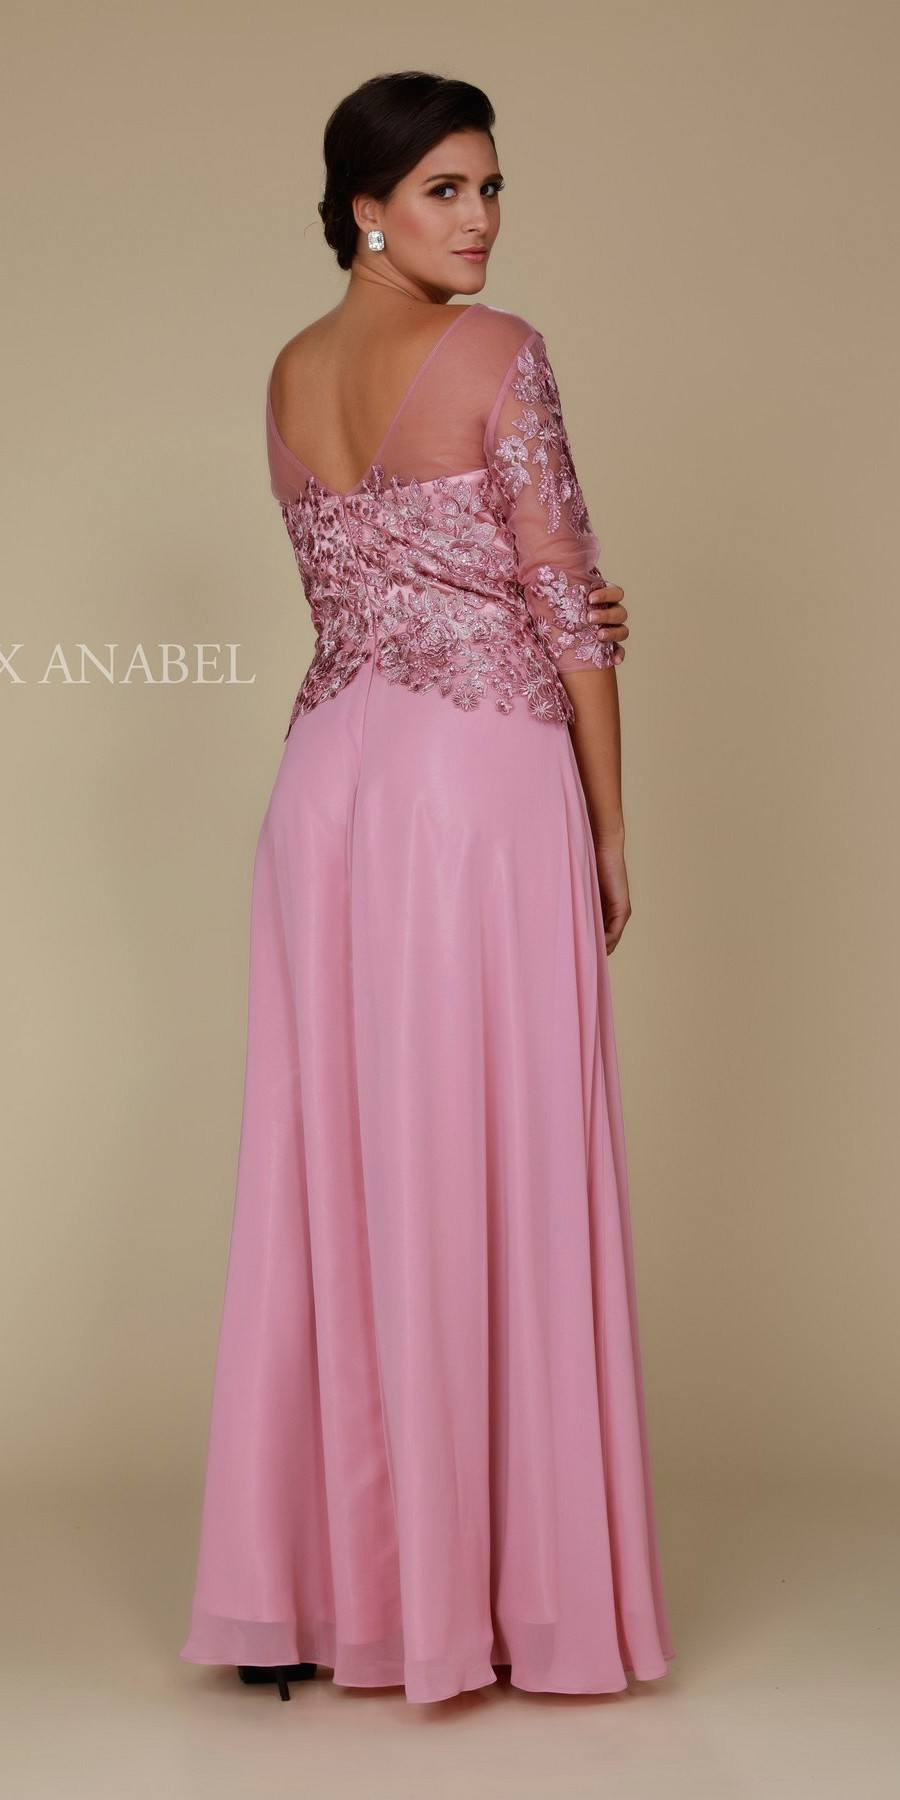 b38a445e261 ... Rose Illusion Appliqued Long Formal Dress Mid-Sleeve Back View ...